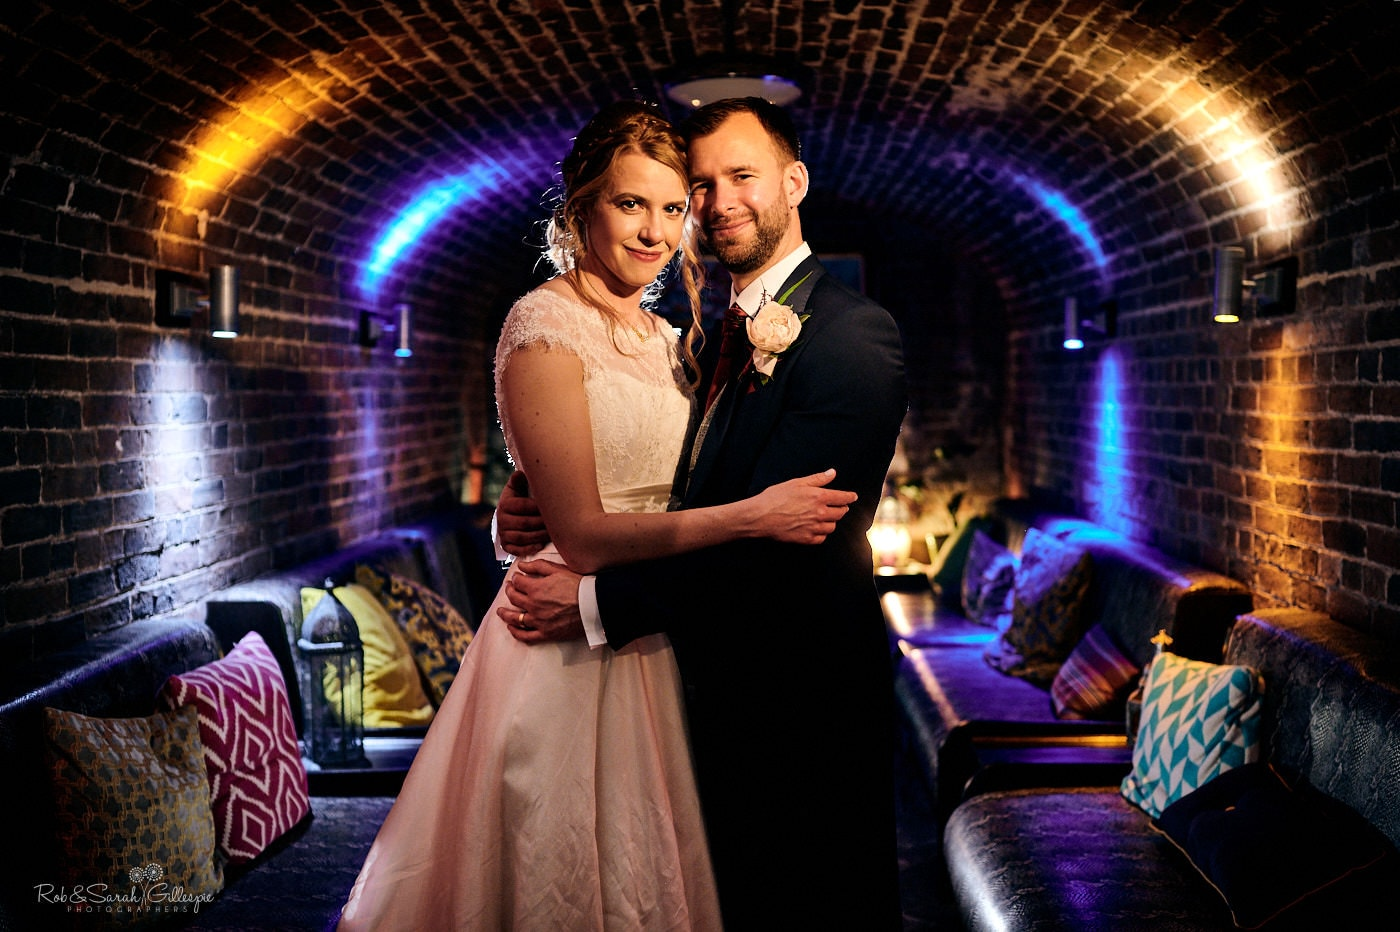 Bride and groom un cellar at Spring Grove House surrounded by sofas and lighting